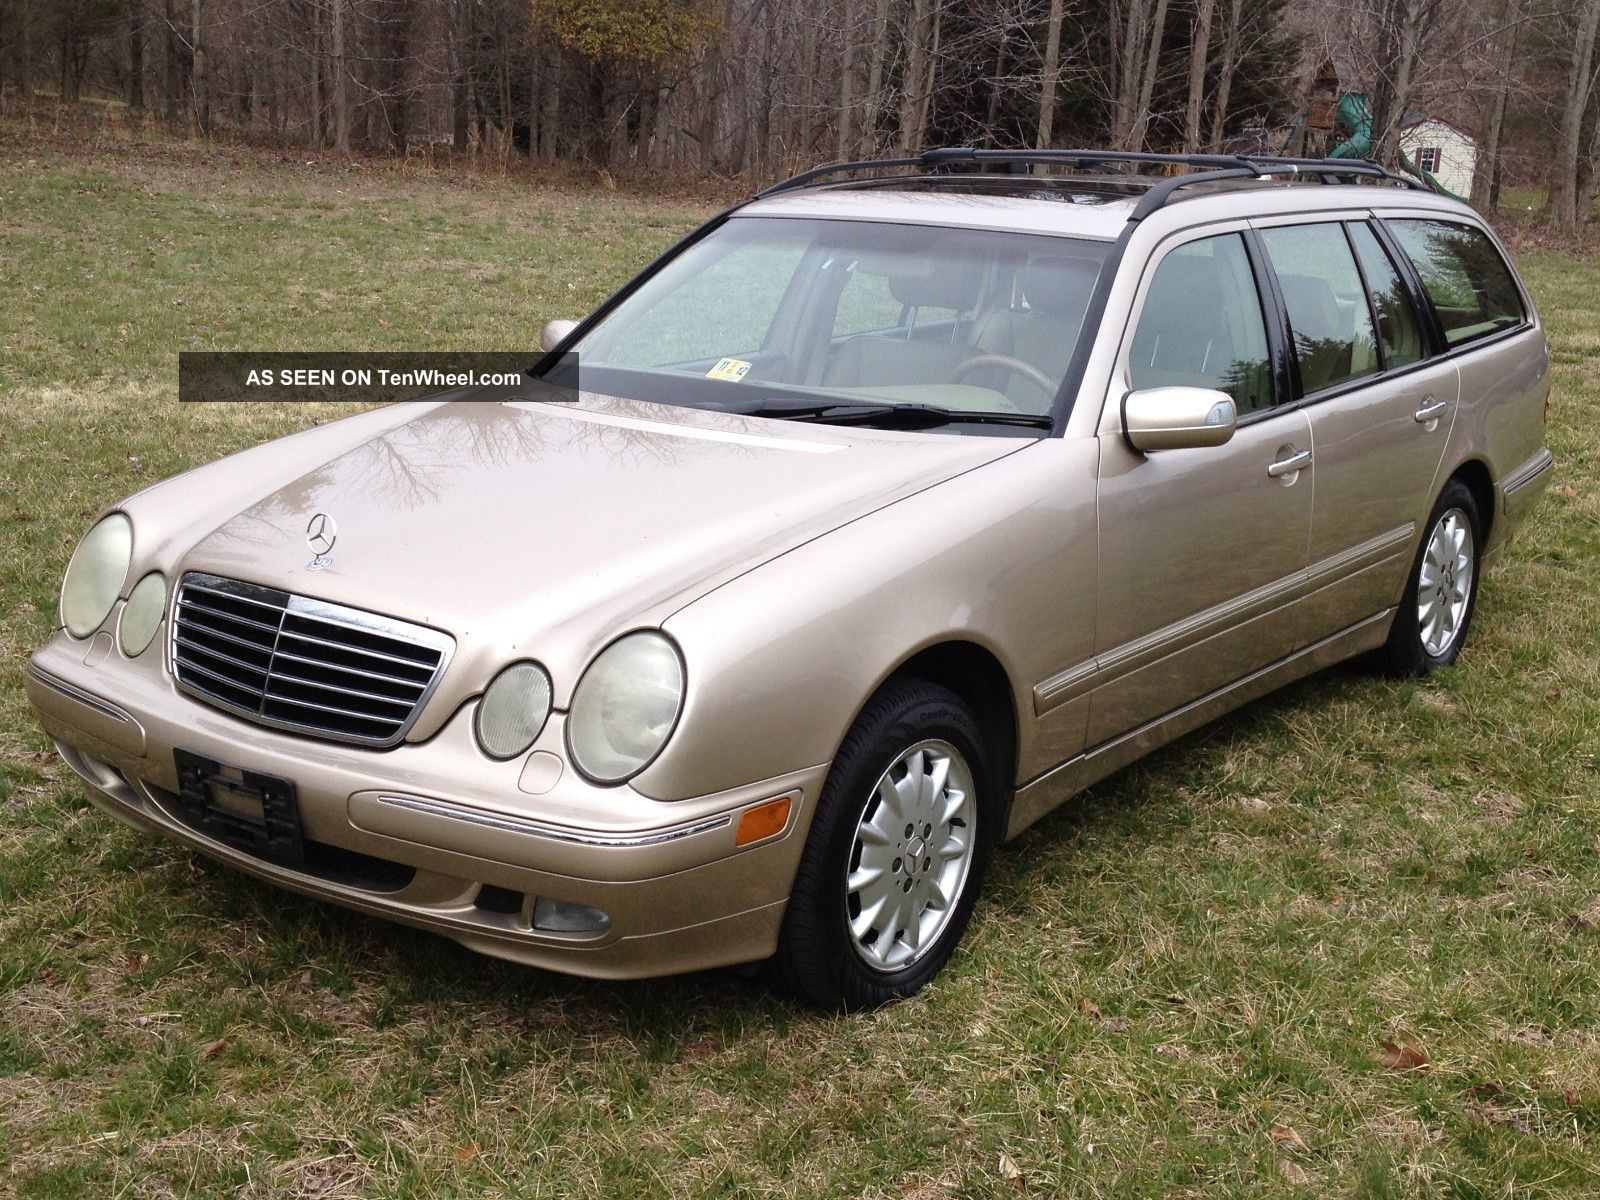 2002 mercedes benz e320 4matic wagon